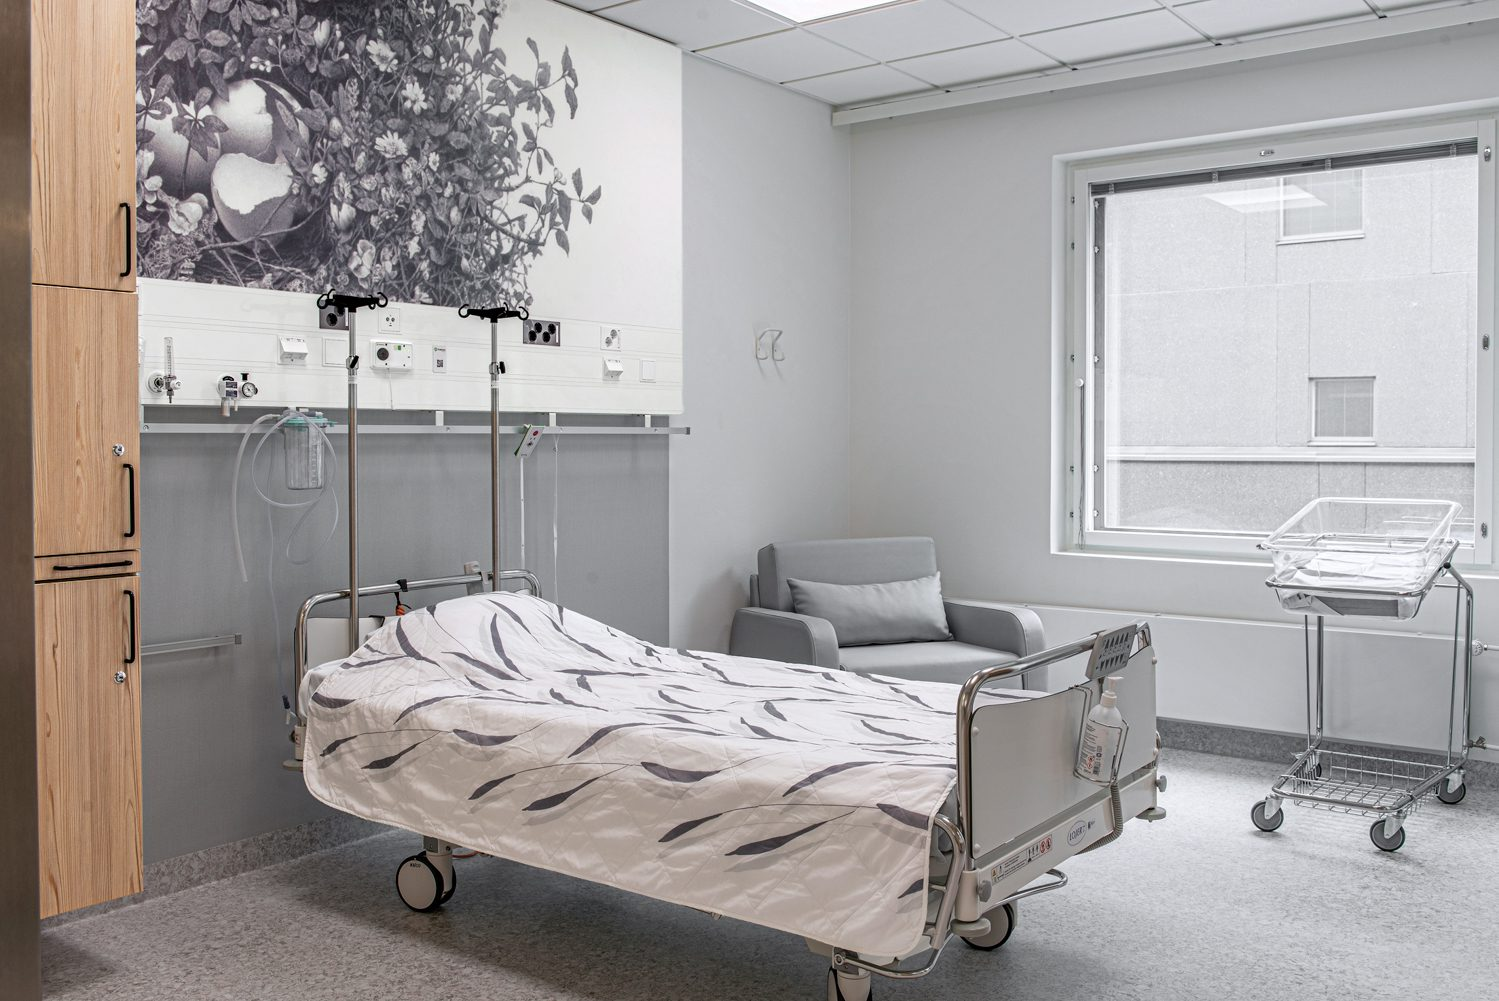 Yuichiro Sato's pencil and coal drawing of a bird's nest is printed on awall's laminated board in one of the 368 patient rooms. Photography by Pauliina Salonen.